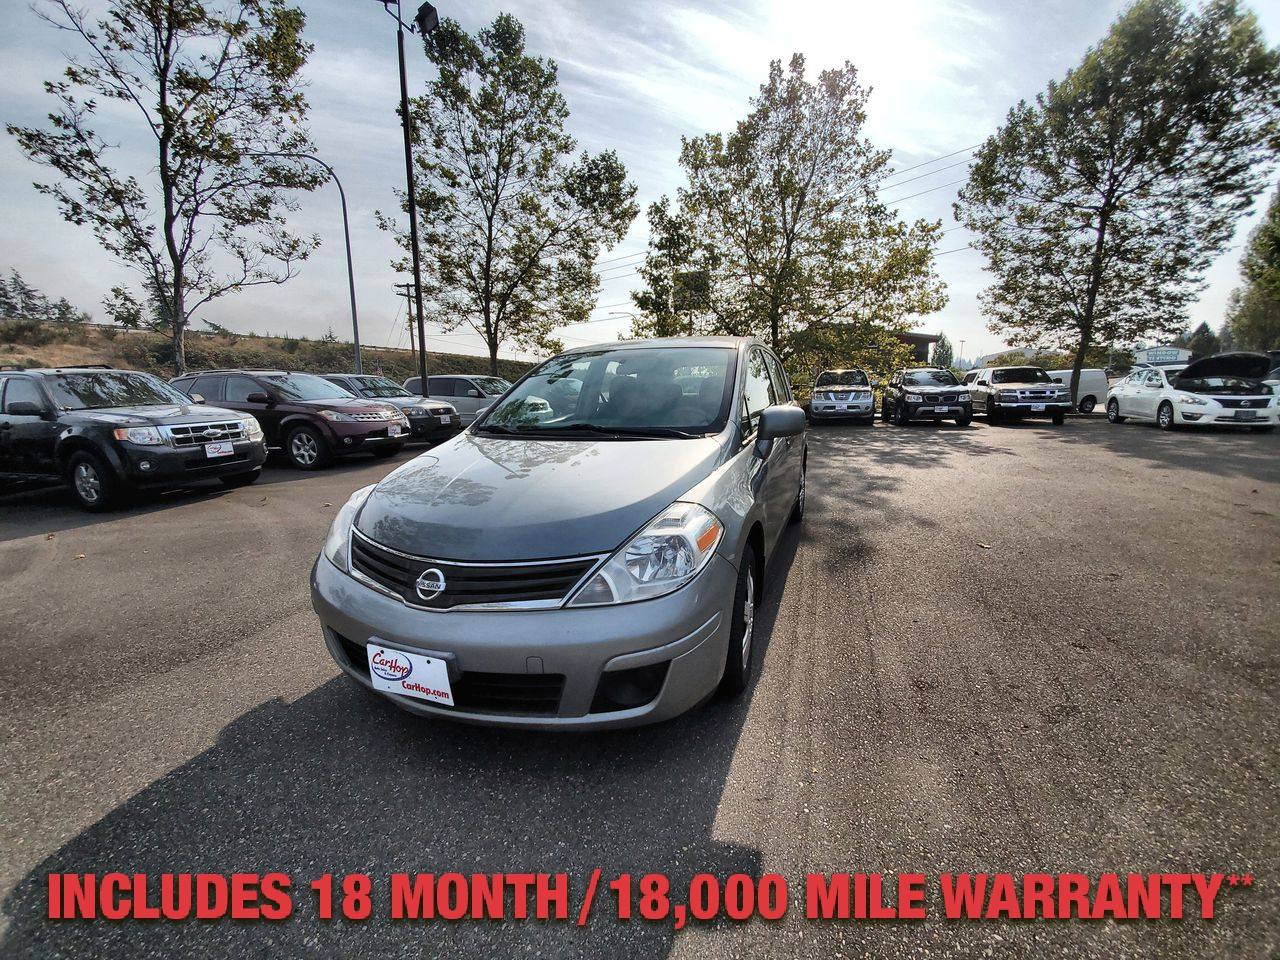 Pre-Owned 2010 NISSAN VERSA S Hatchbac